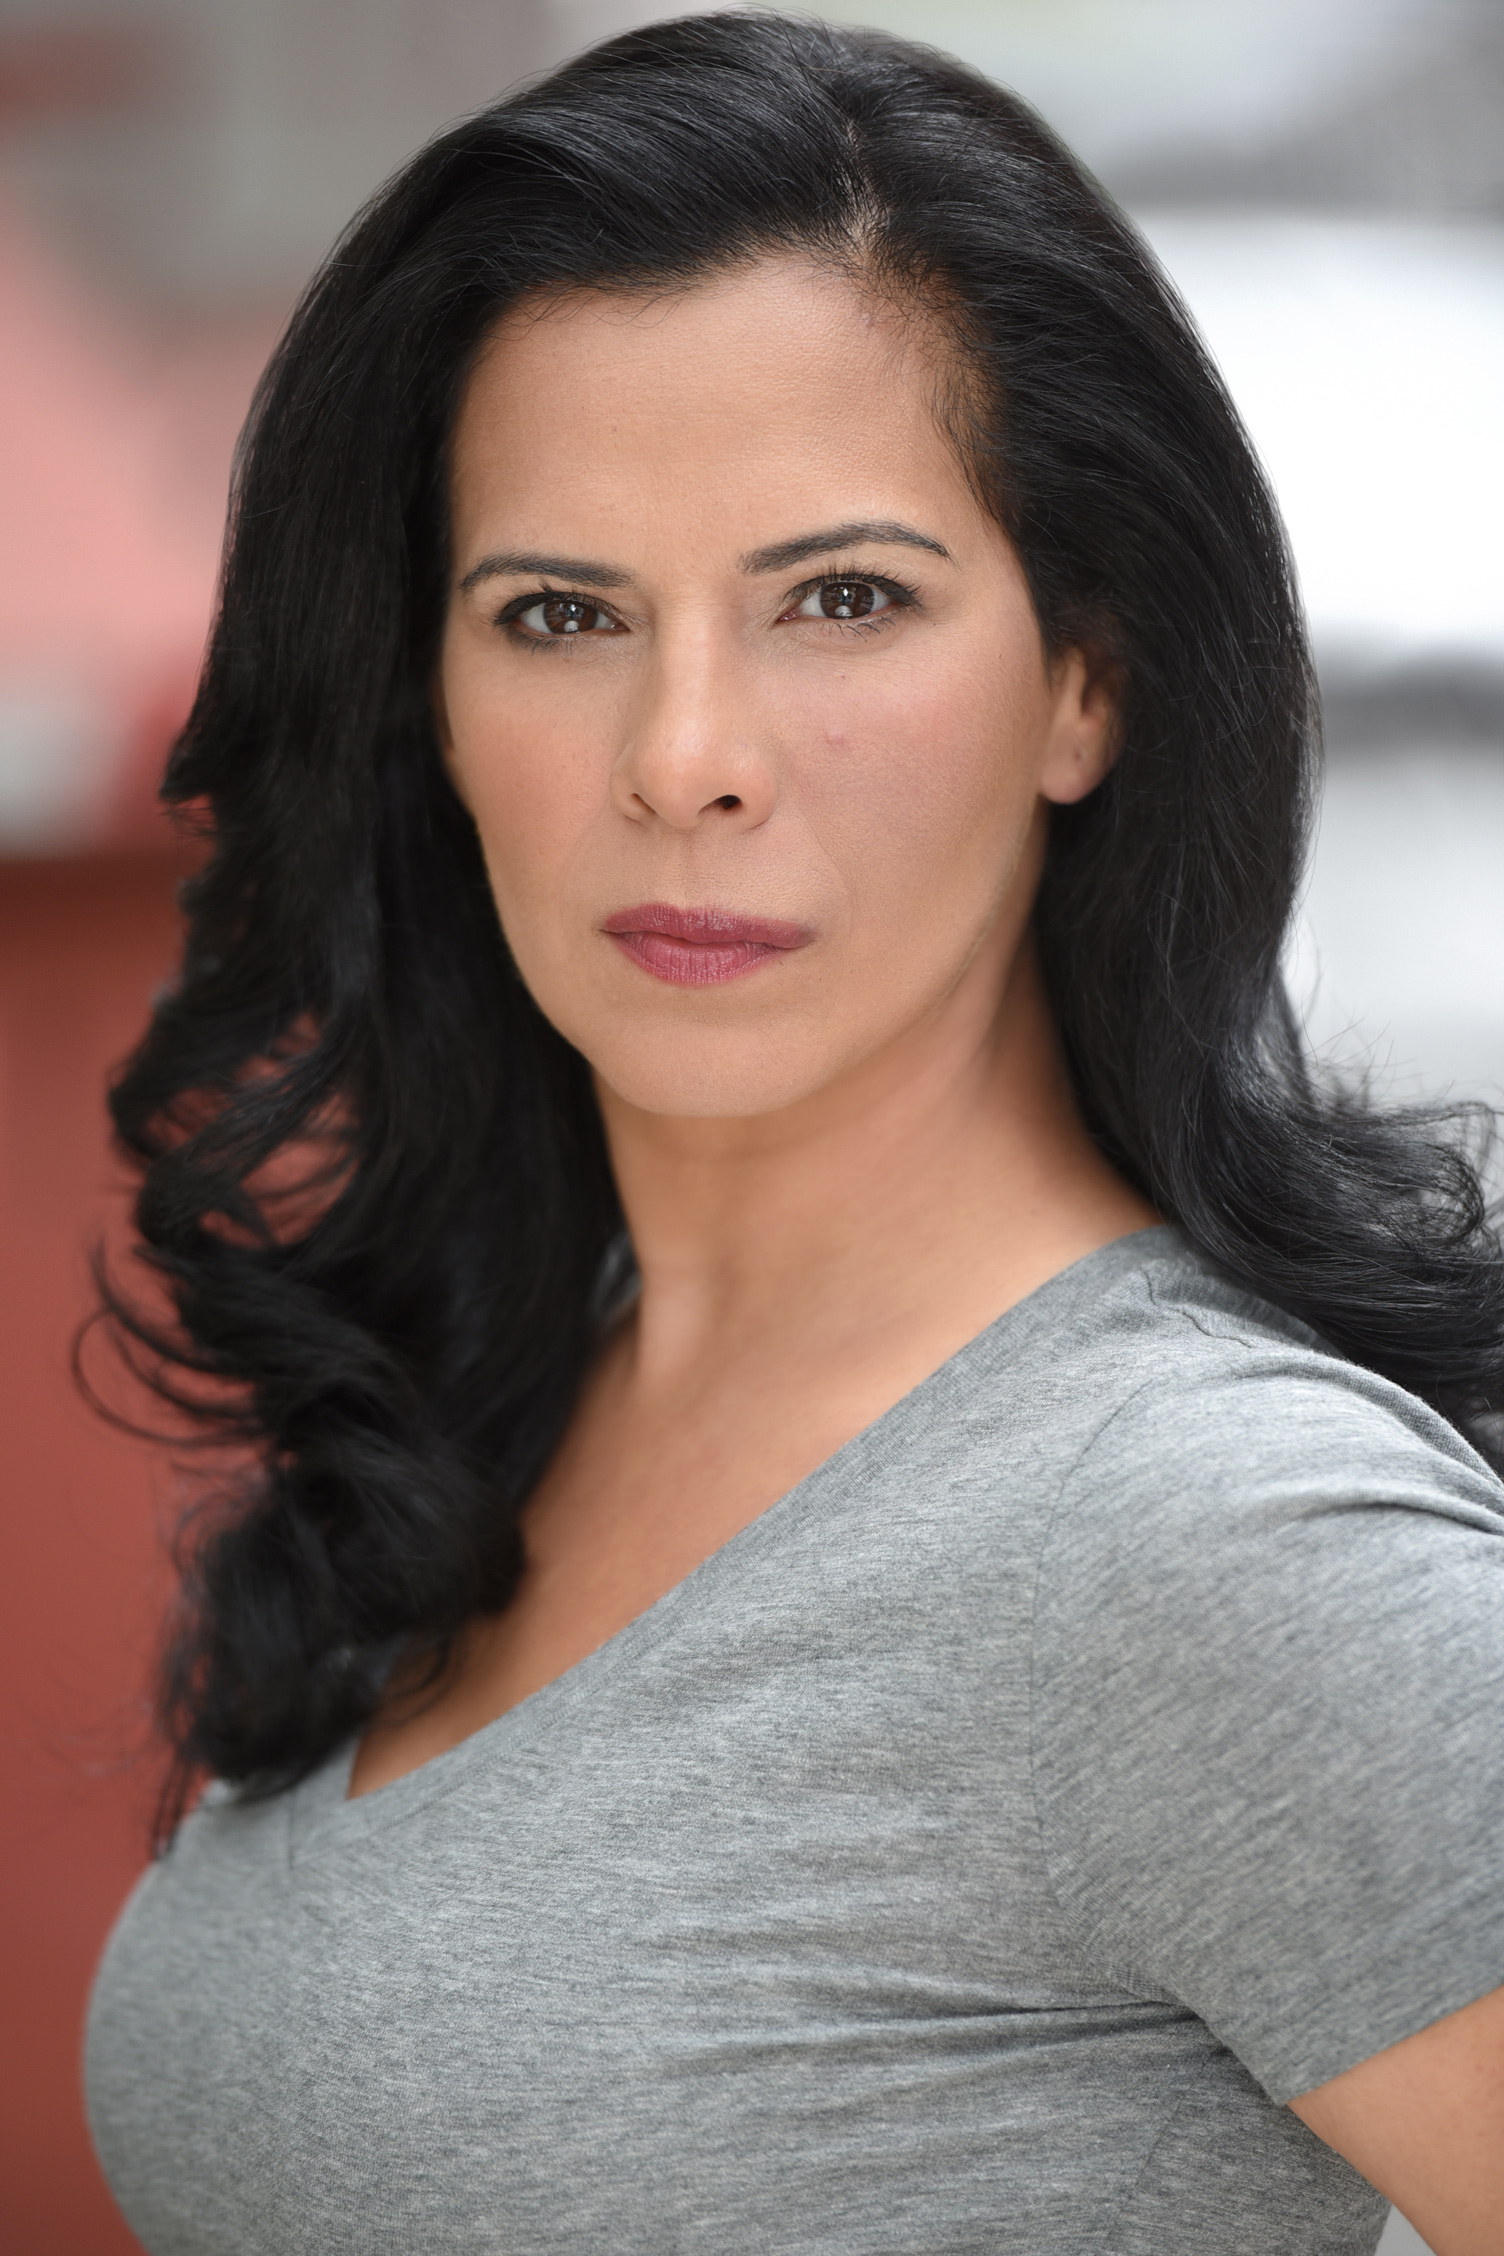 - Actor, Producer. Theatre, Film, Television. These words, when used in reference to Lorraine Rodriguez-Reyes, describe creative pathways on which a consummate artist can relentlessly pursue her passion.